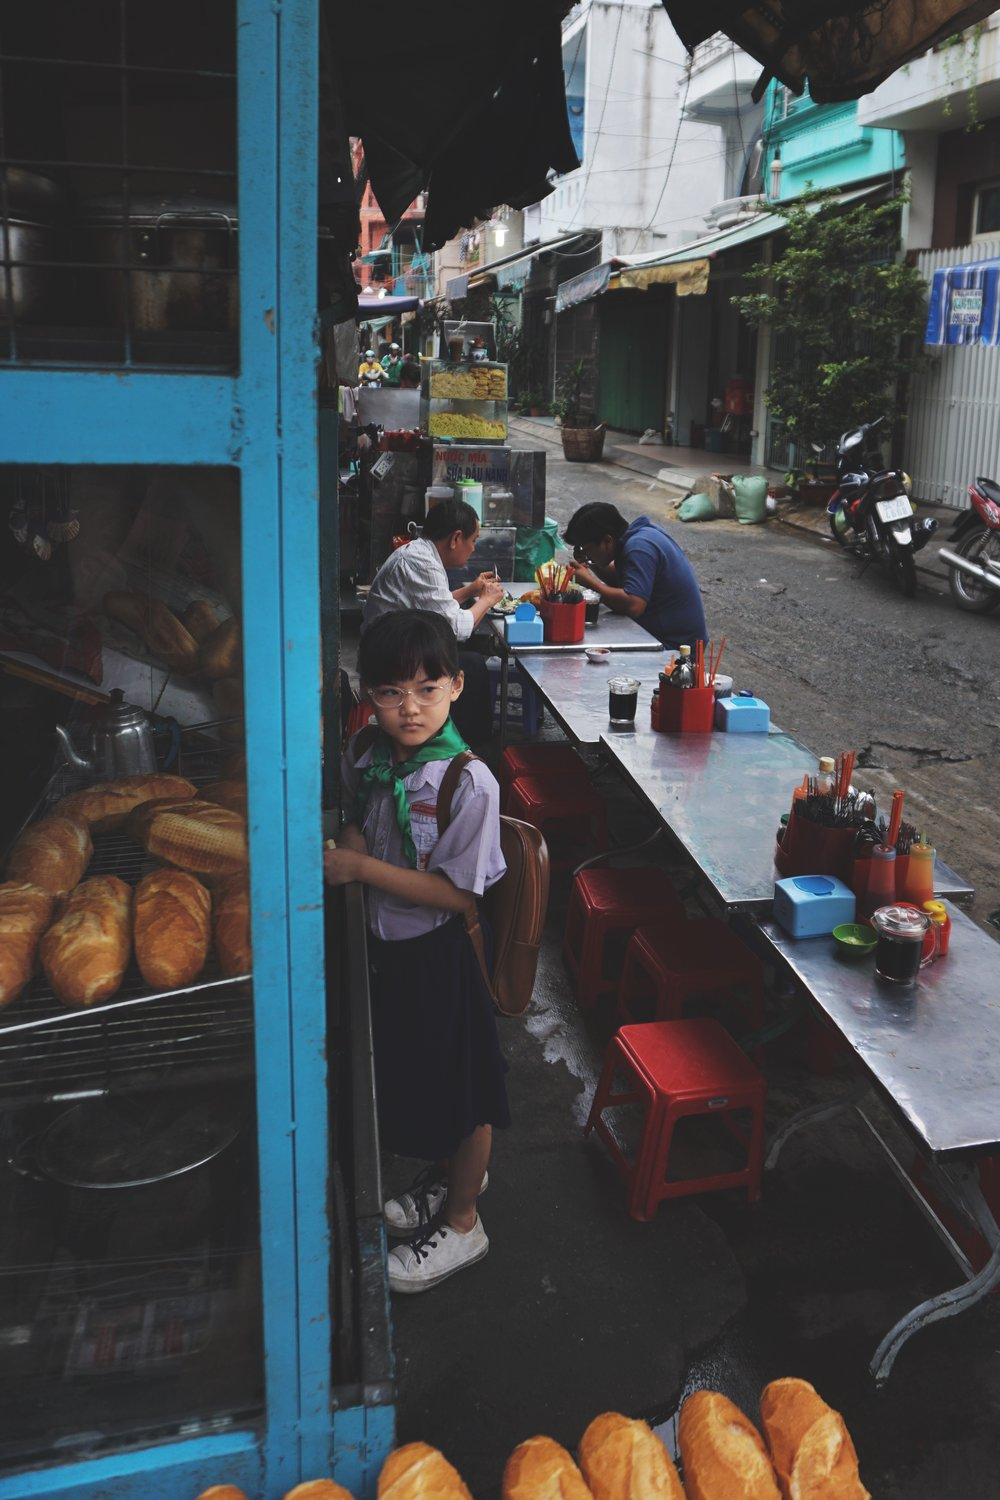 A little girl takes herself to school. But first, banh mi.